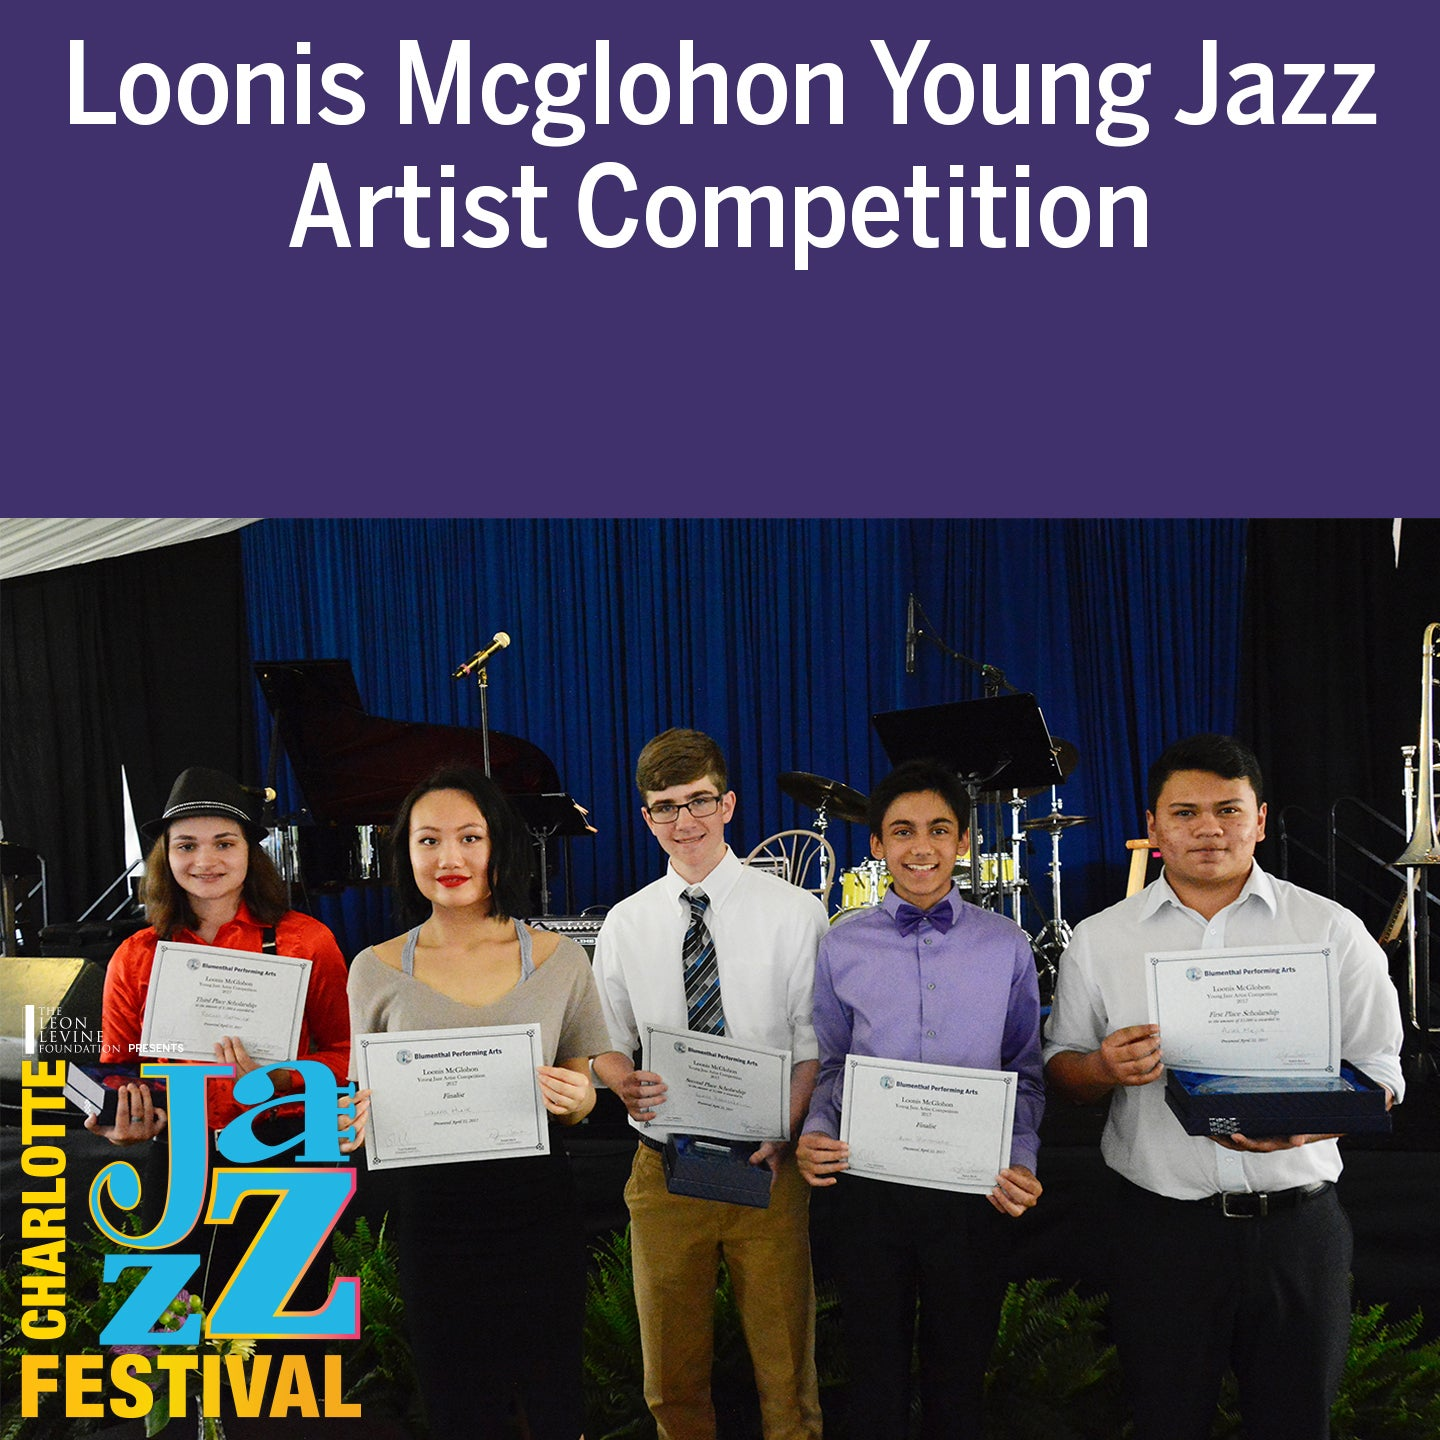 Loonis McGlohon Young Jazz Artist Competition